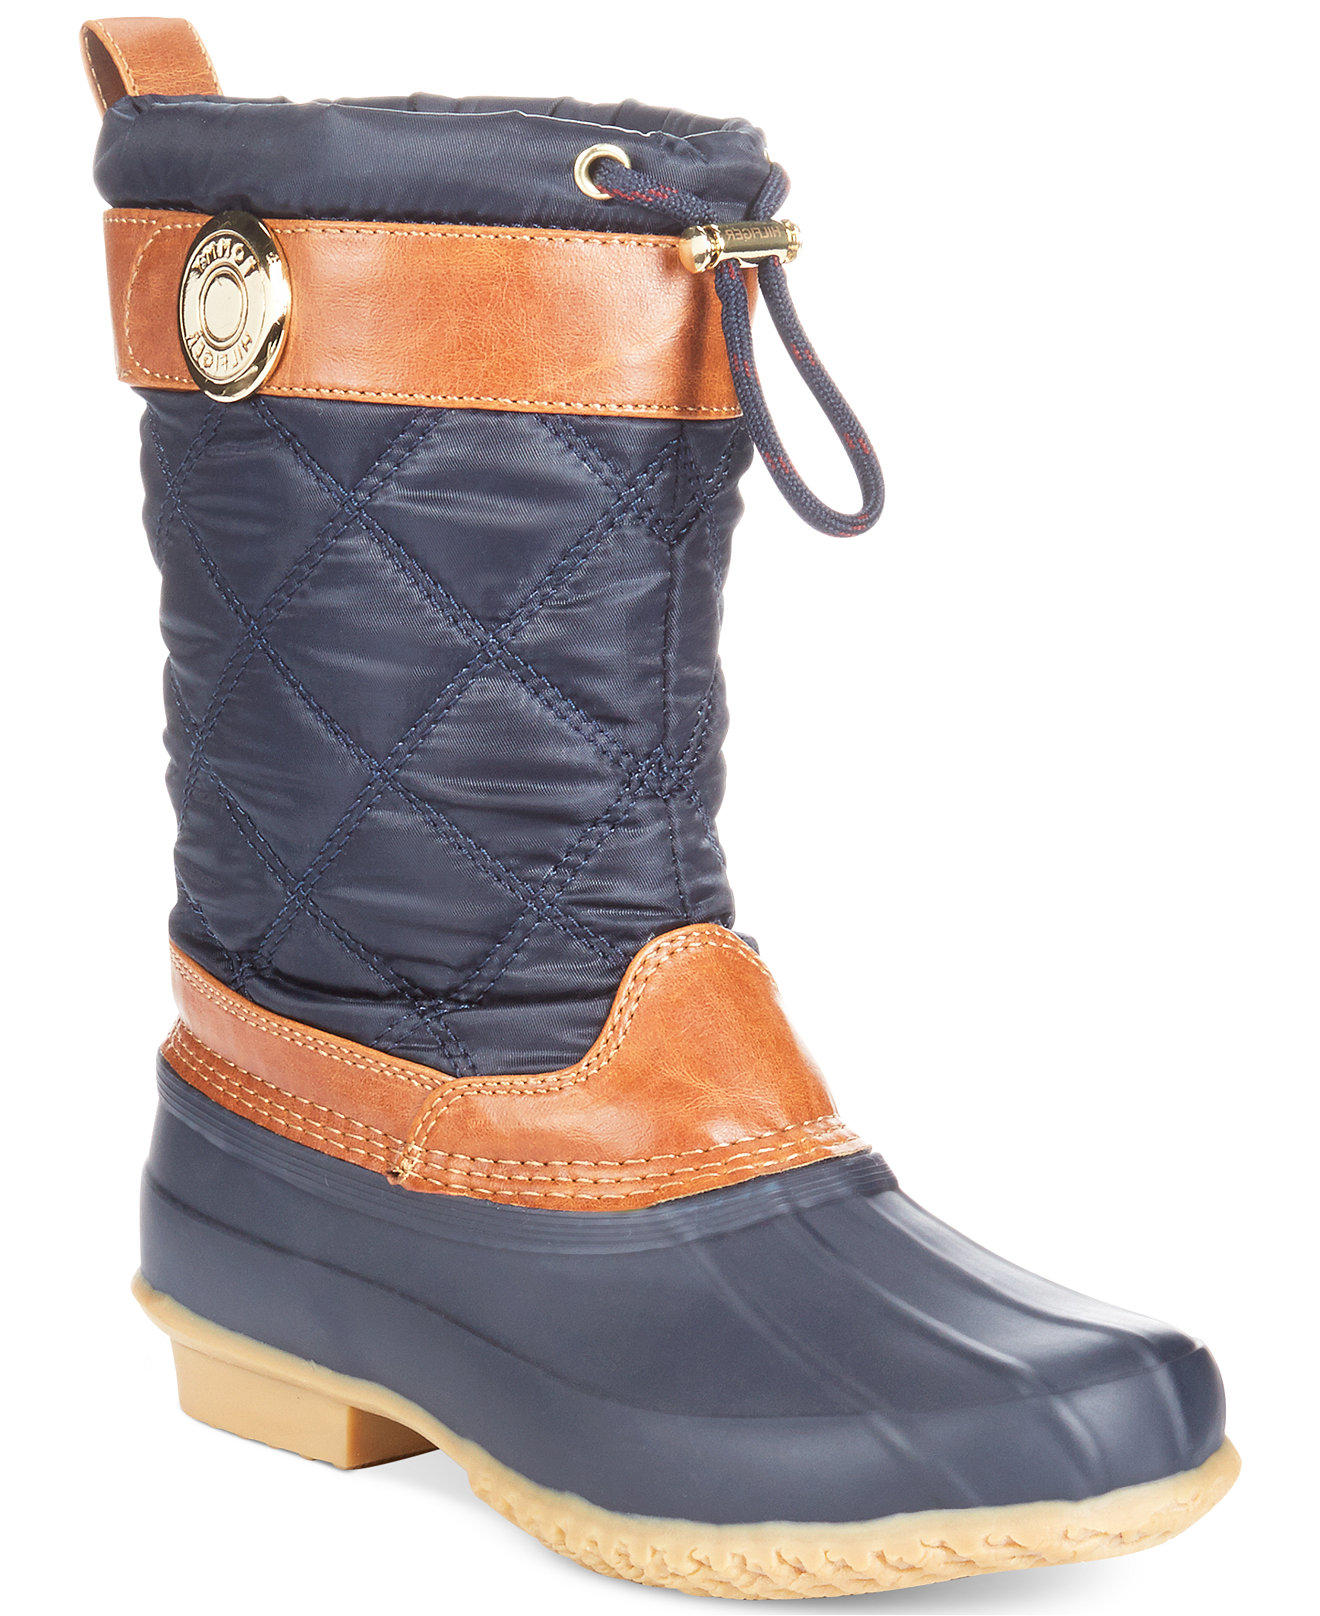 Tommy Hilfiger Women's Arcadia Duck Boots from Macys